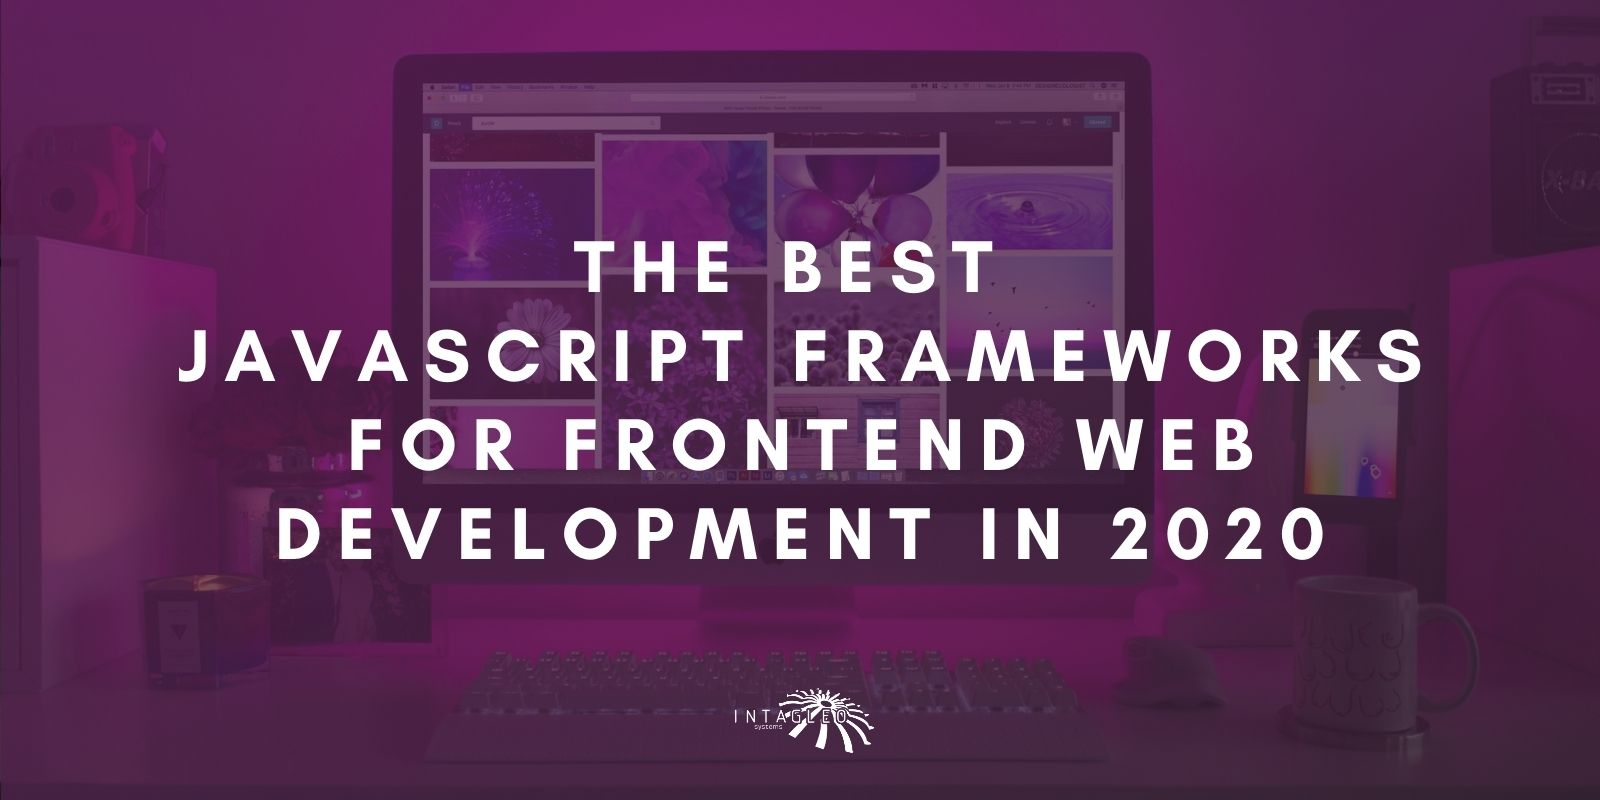 The Best JavaScript Frameworks for Frontend Web Development in 2020